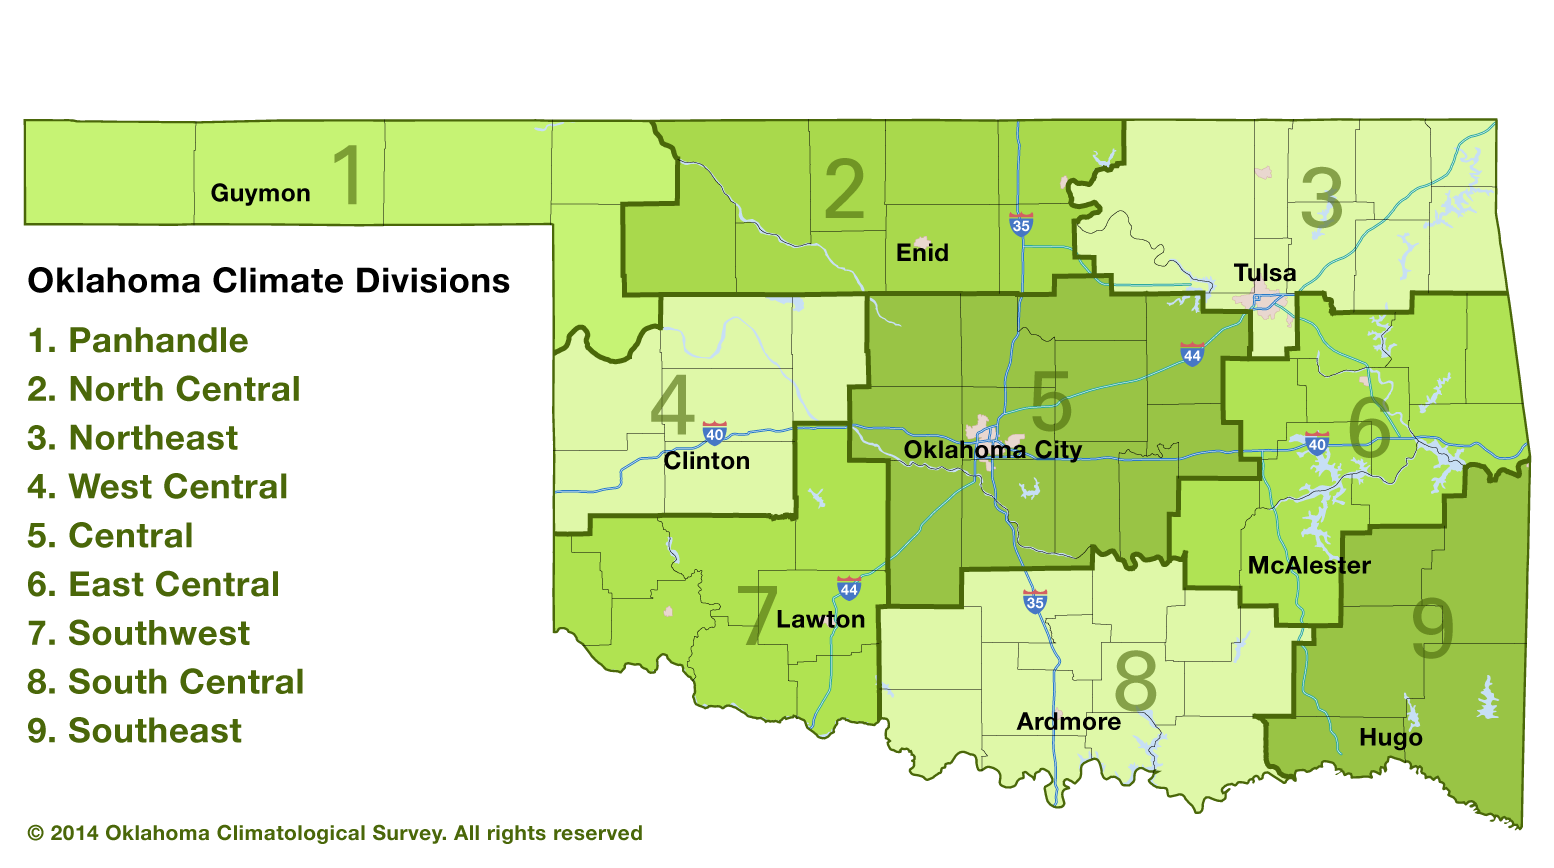 Oklahoma Climatological Survey | Map of Oklahoma climate divisions on us map ok, city of kingfisher ok, oklahoma map sallisaw ok, city of norman ok, geography of ok, text of ok, county map ok, weather of ok, oklahoma map woodward ok, city of haskell ok, oklahoma map mcalester ok, drawing of ok, city of hartshorne ok, google maps mustang ok, city of ada ok, city of tulsa ok, sort of ok, city of ryan ok, city of del city ok, area code map tulsa ok,